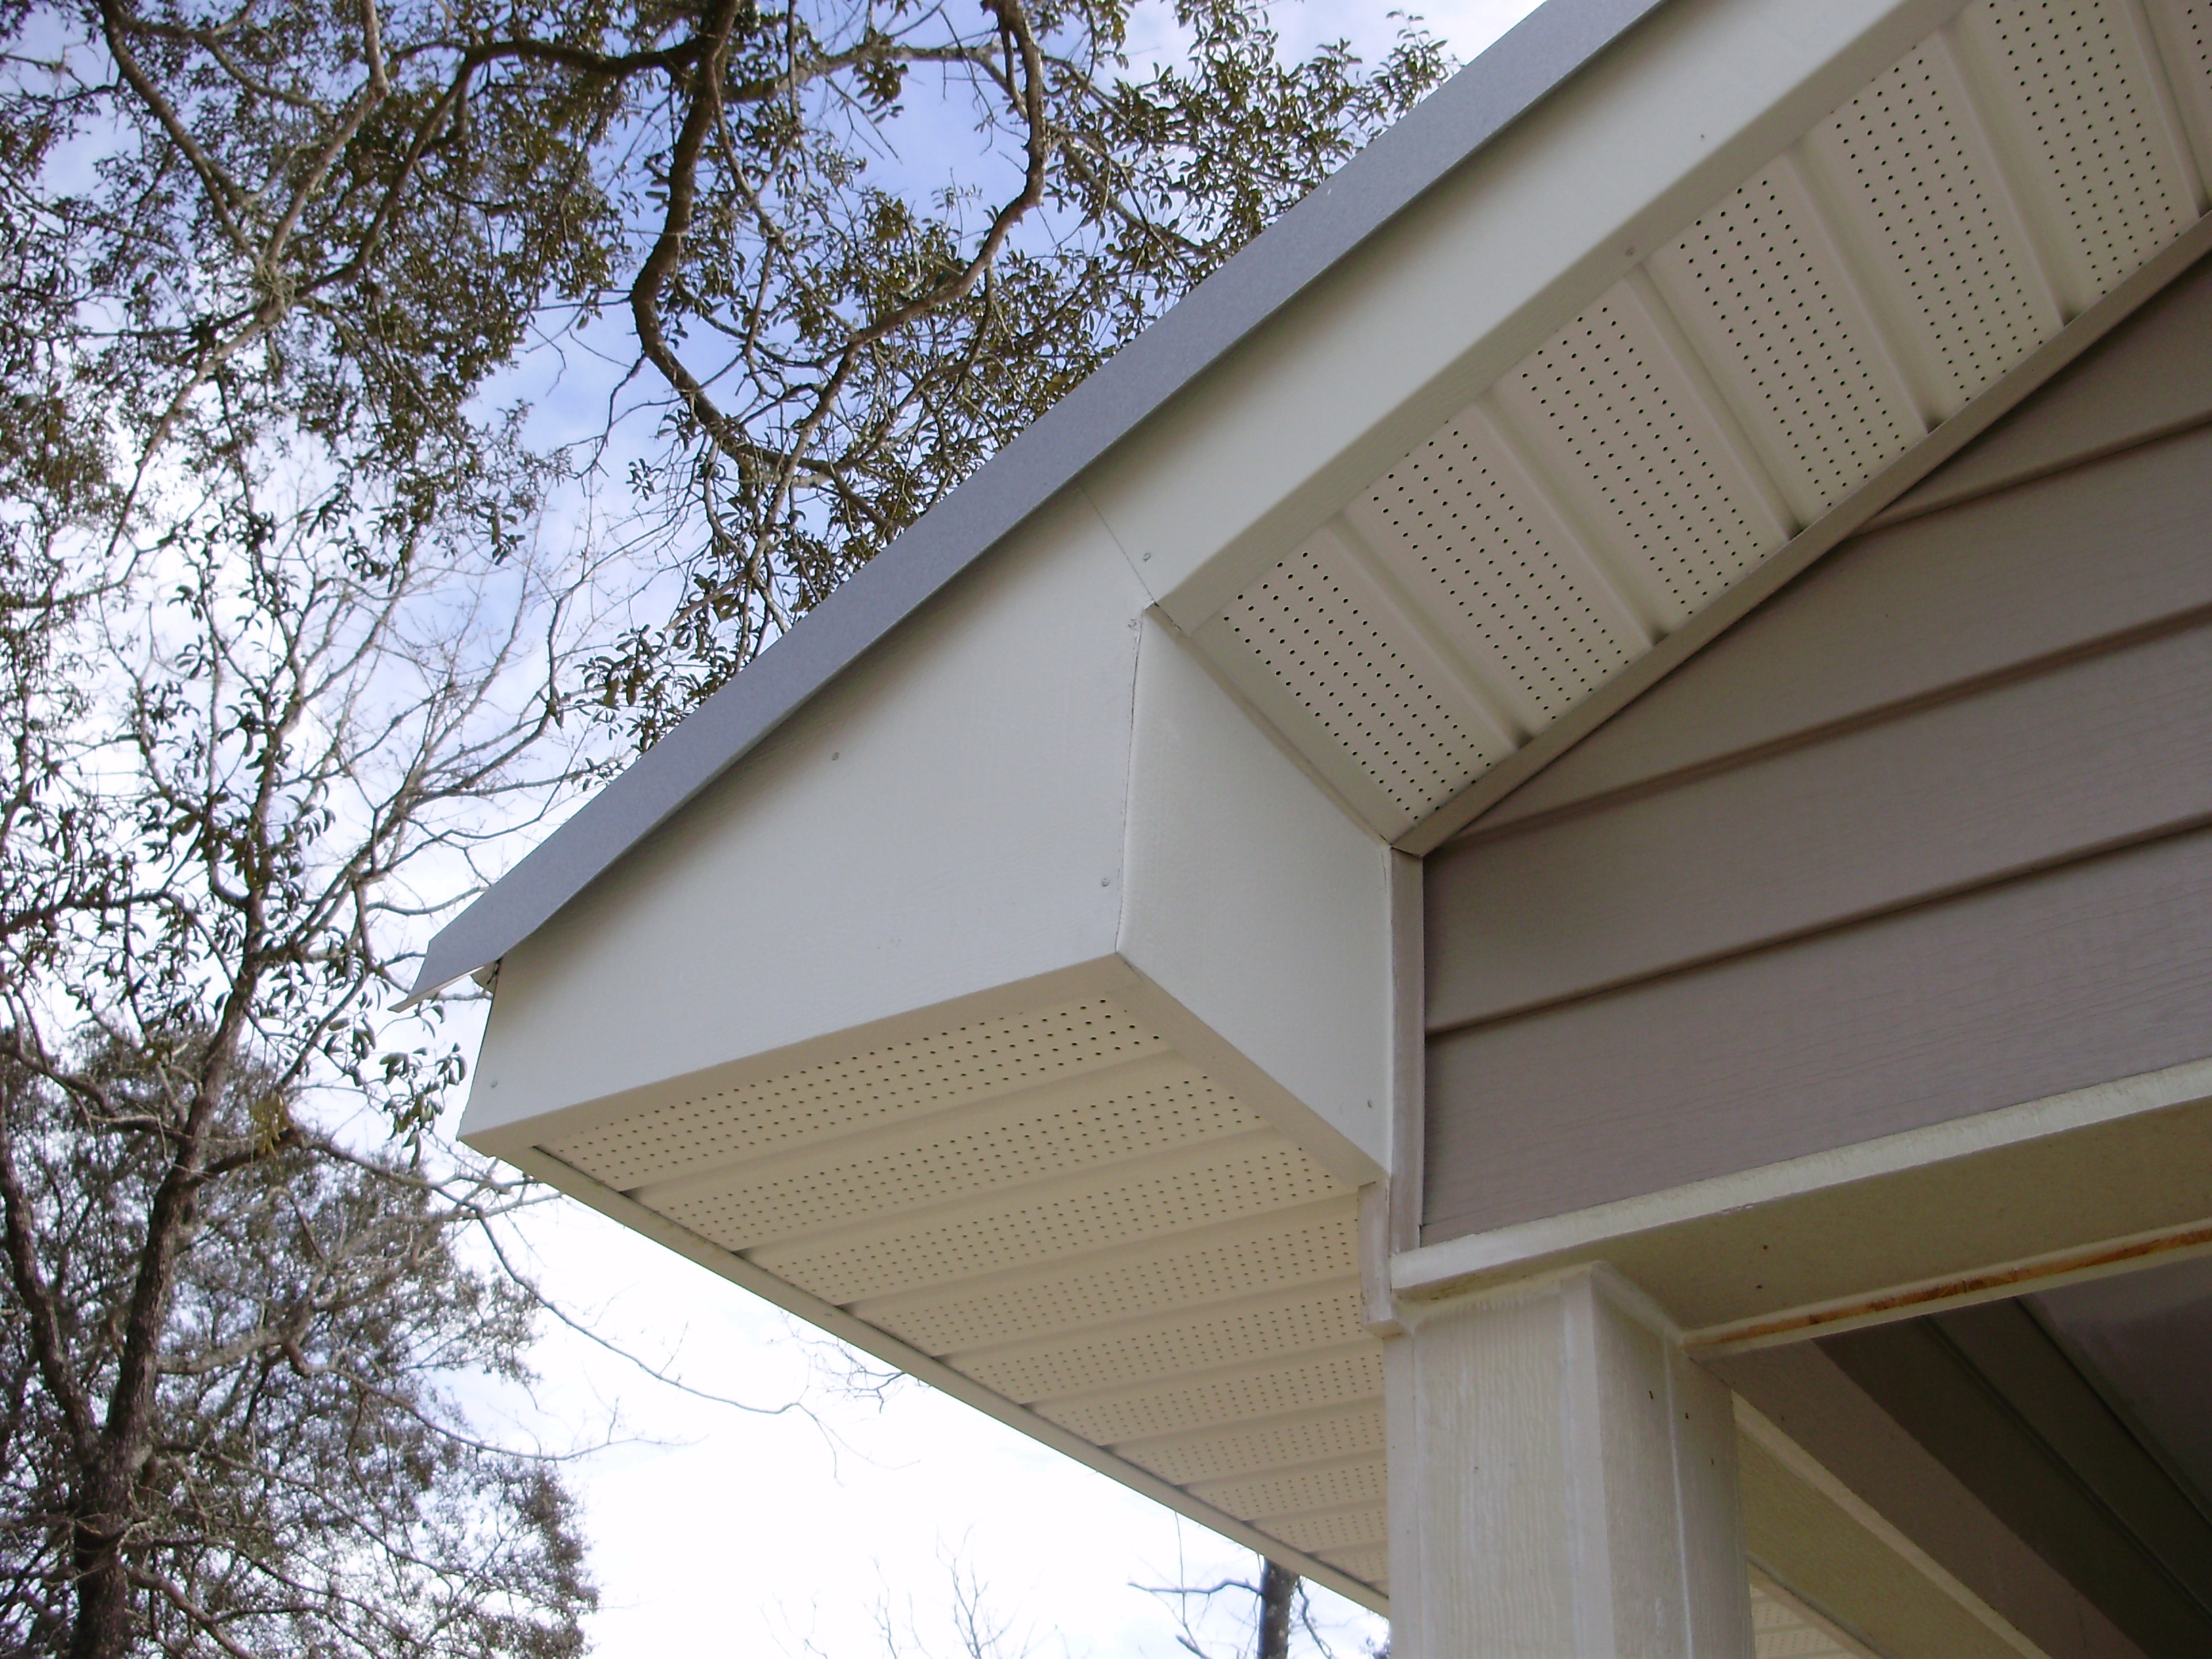 Vinyl Trim Pvc Siding And Upvc Building Materials For The